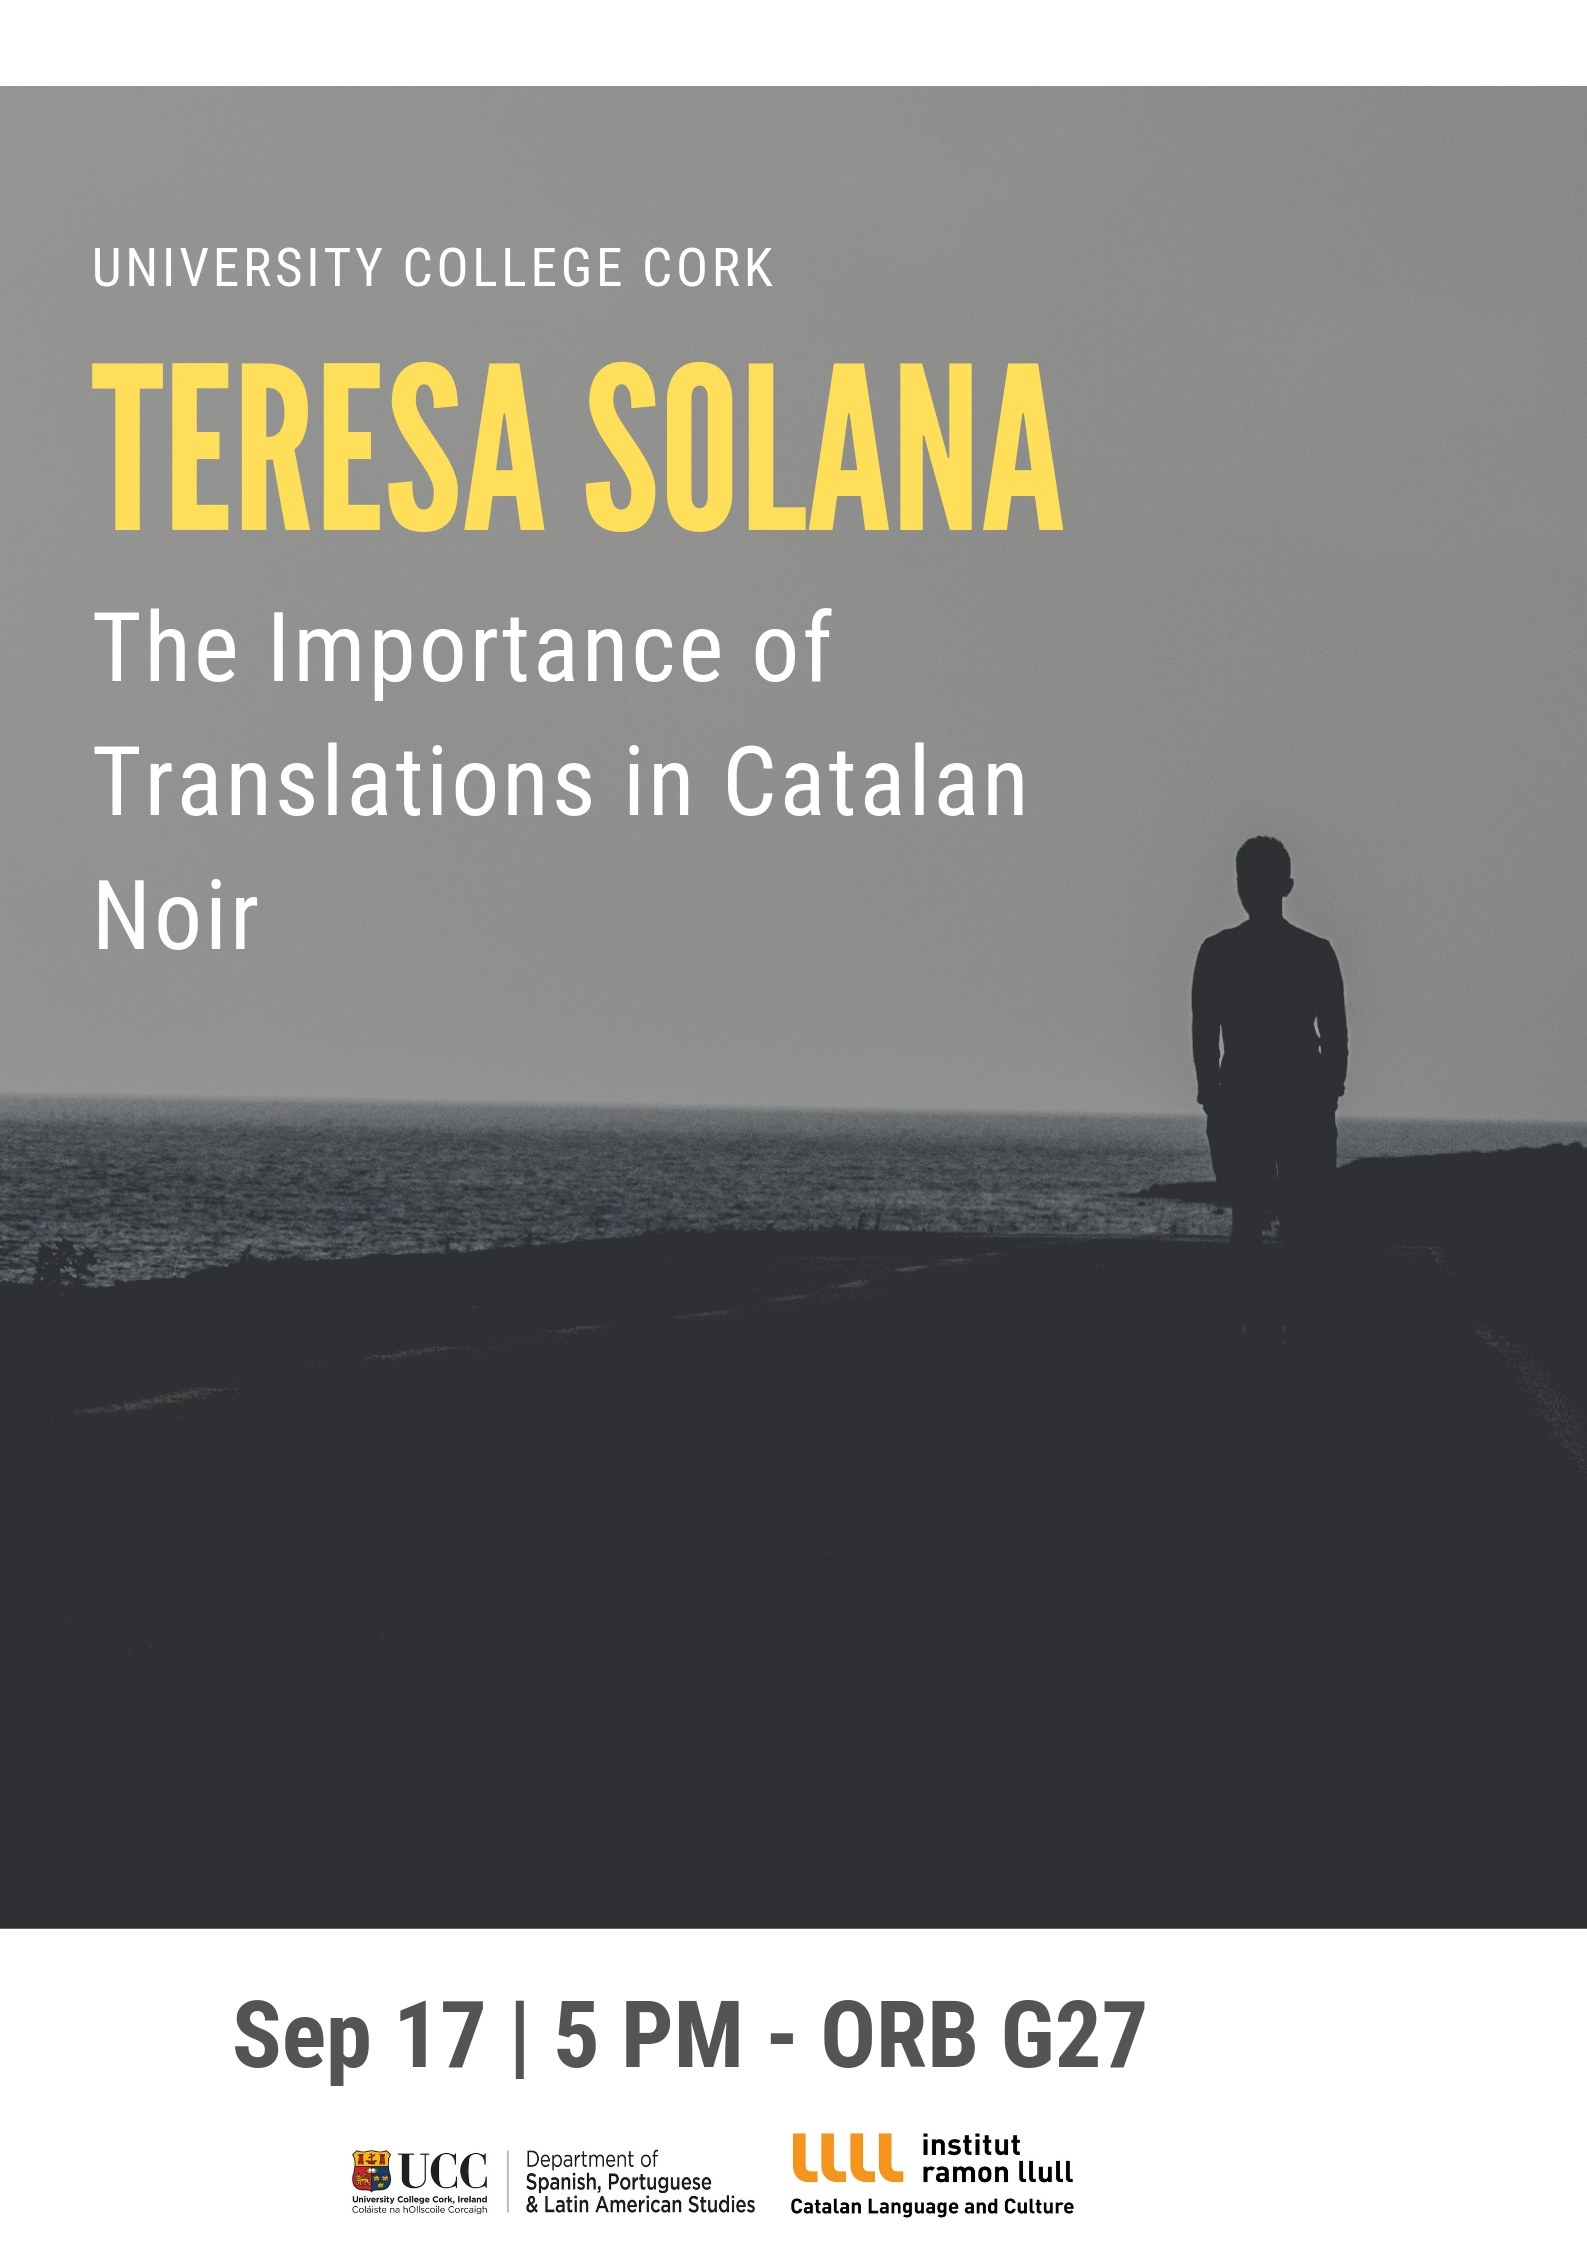 Teresa Solana in UCC on Sept. 17th: The Importance of Translations in Catalan Noir